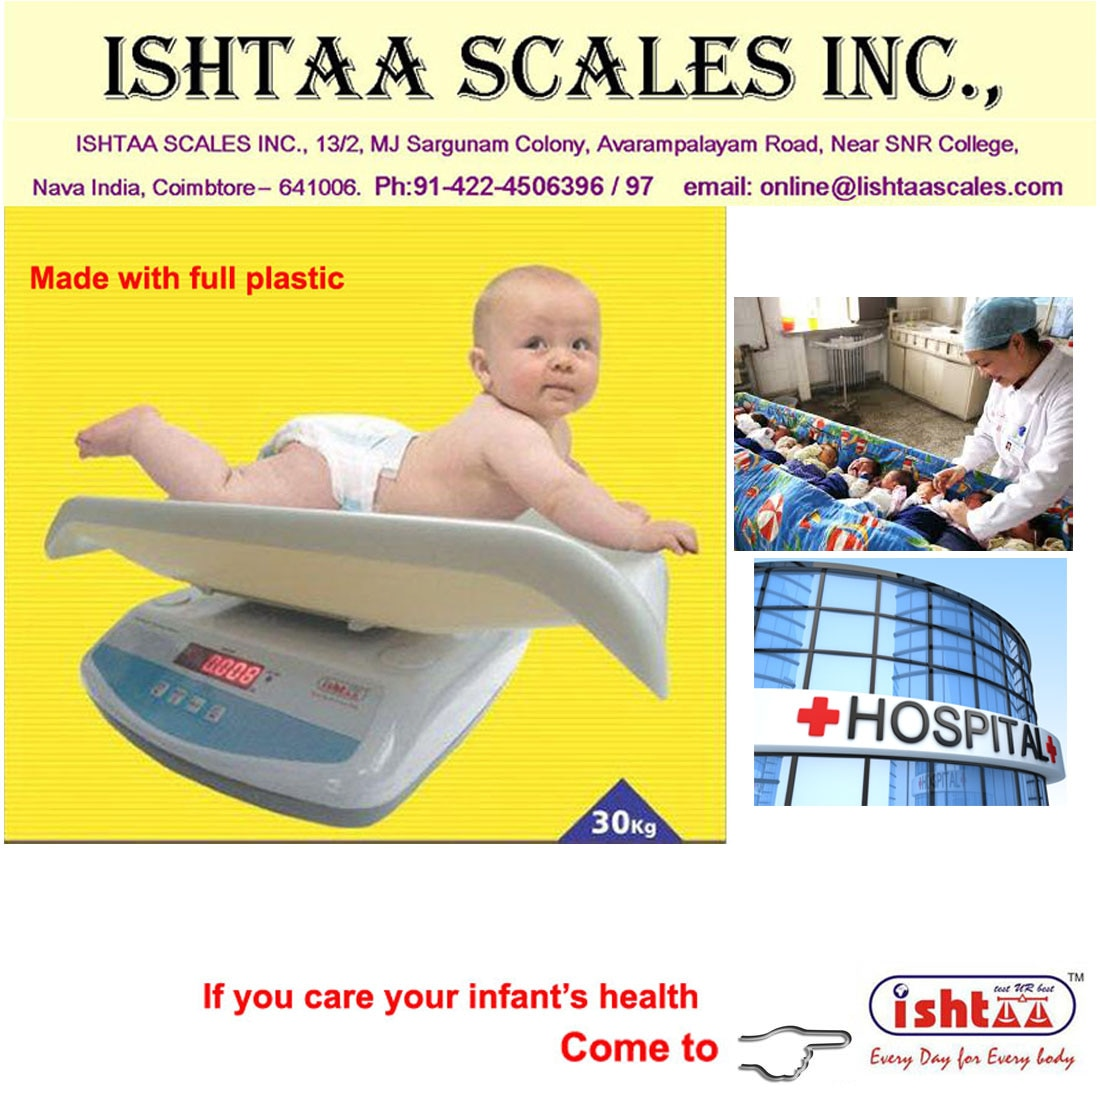 Know your infant's health chart..! We provide quality devices made 4 u. Digital Baby Weighing Scales at Best Quality High Accuracy Electronic Weighing Scales Made with full Plastic to safeguard the Babies health Used in all Hospital weighing  Infant Weighing  Baby Weighing Scale Newborn weighing Pediatric weighing Chart Weighing  Online Buy now @ Ishtaa scales Coimbatore. Check in http://goo.gl/K6zB9r ,  Ring 098430 16028 https://t.co/iFfdI1SIIS Email . online@ishtaascales.com Web: www.ishtaascales.com